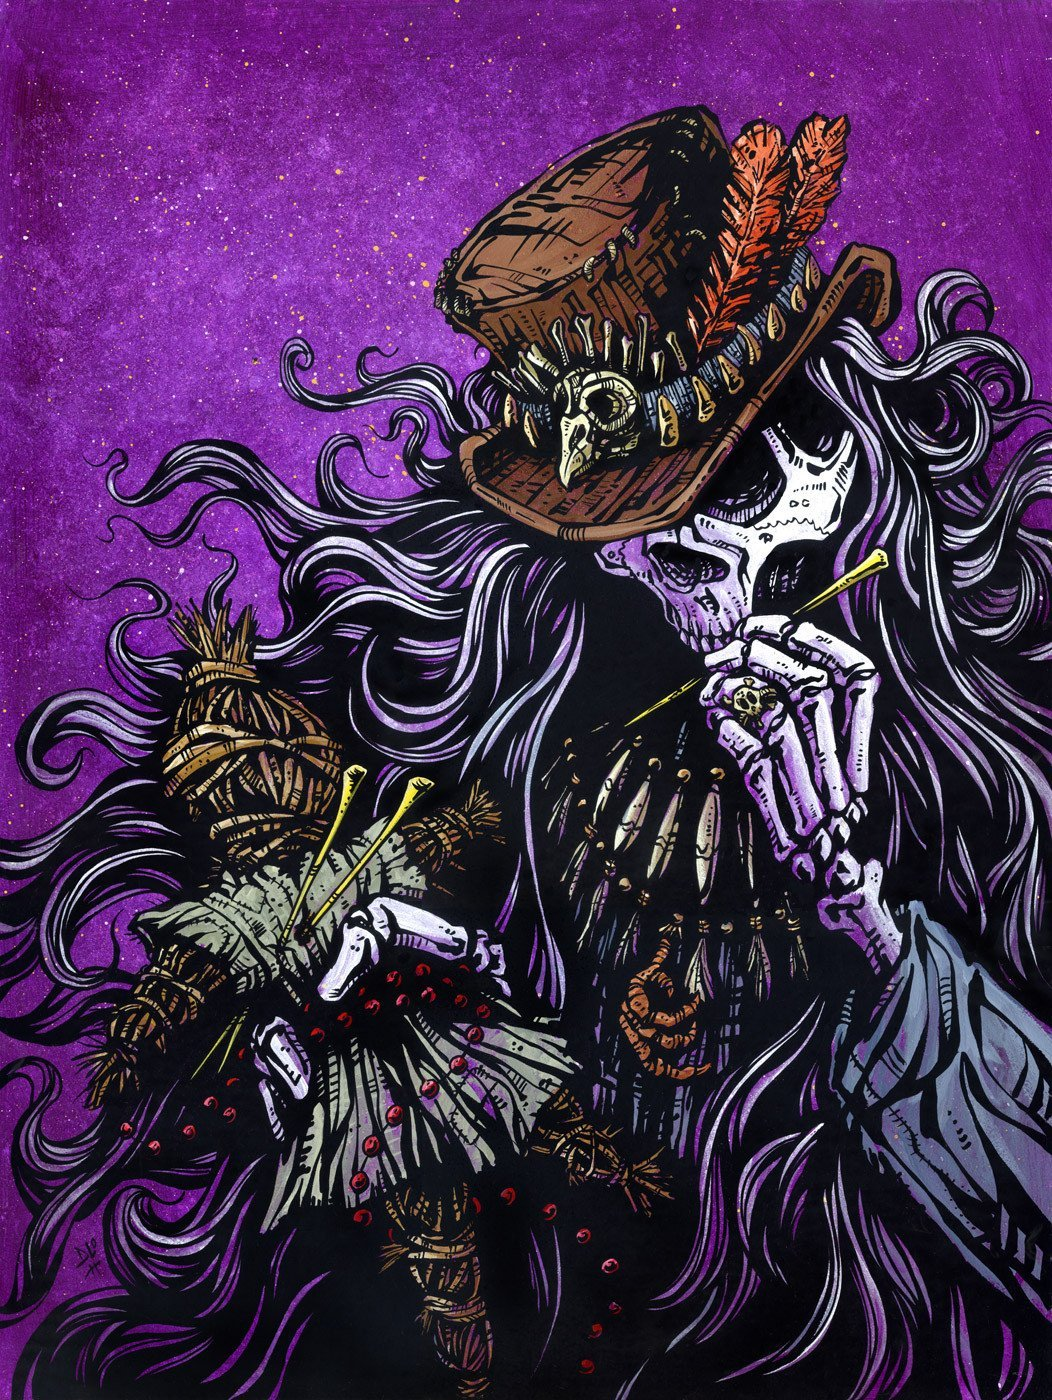 Voodoo Priest by Day of the Dead Artist David Lozeau, Dia de los Muertos, Muertos, Sugar Skull